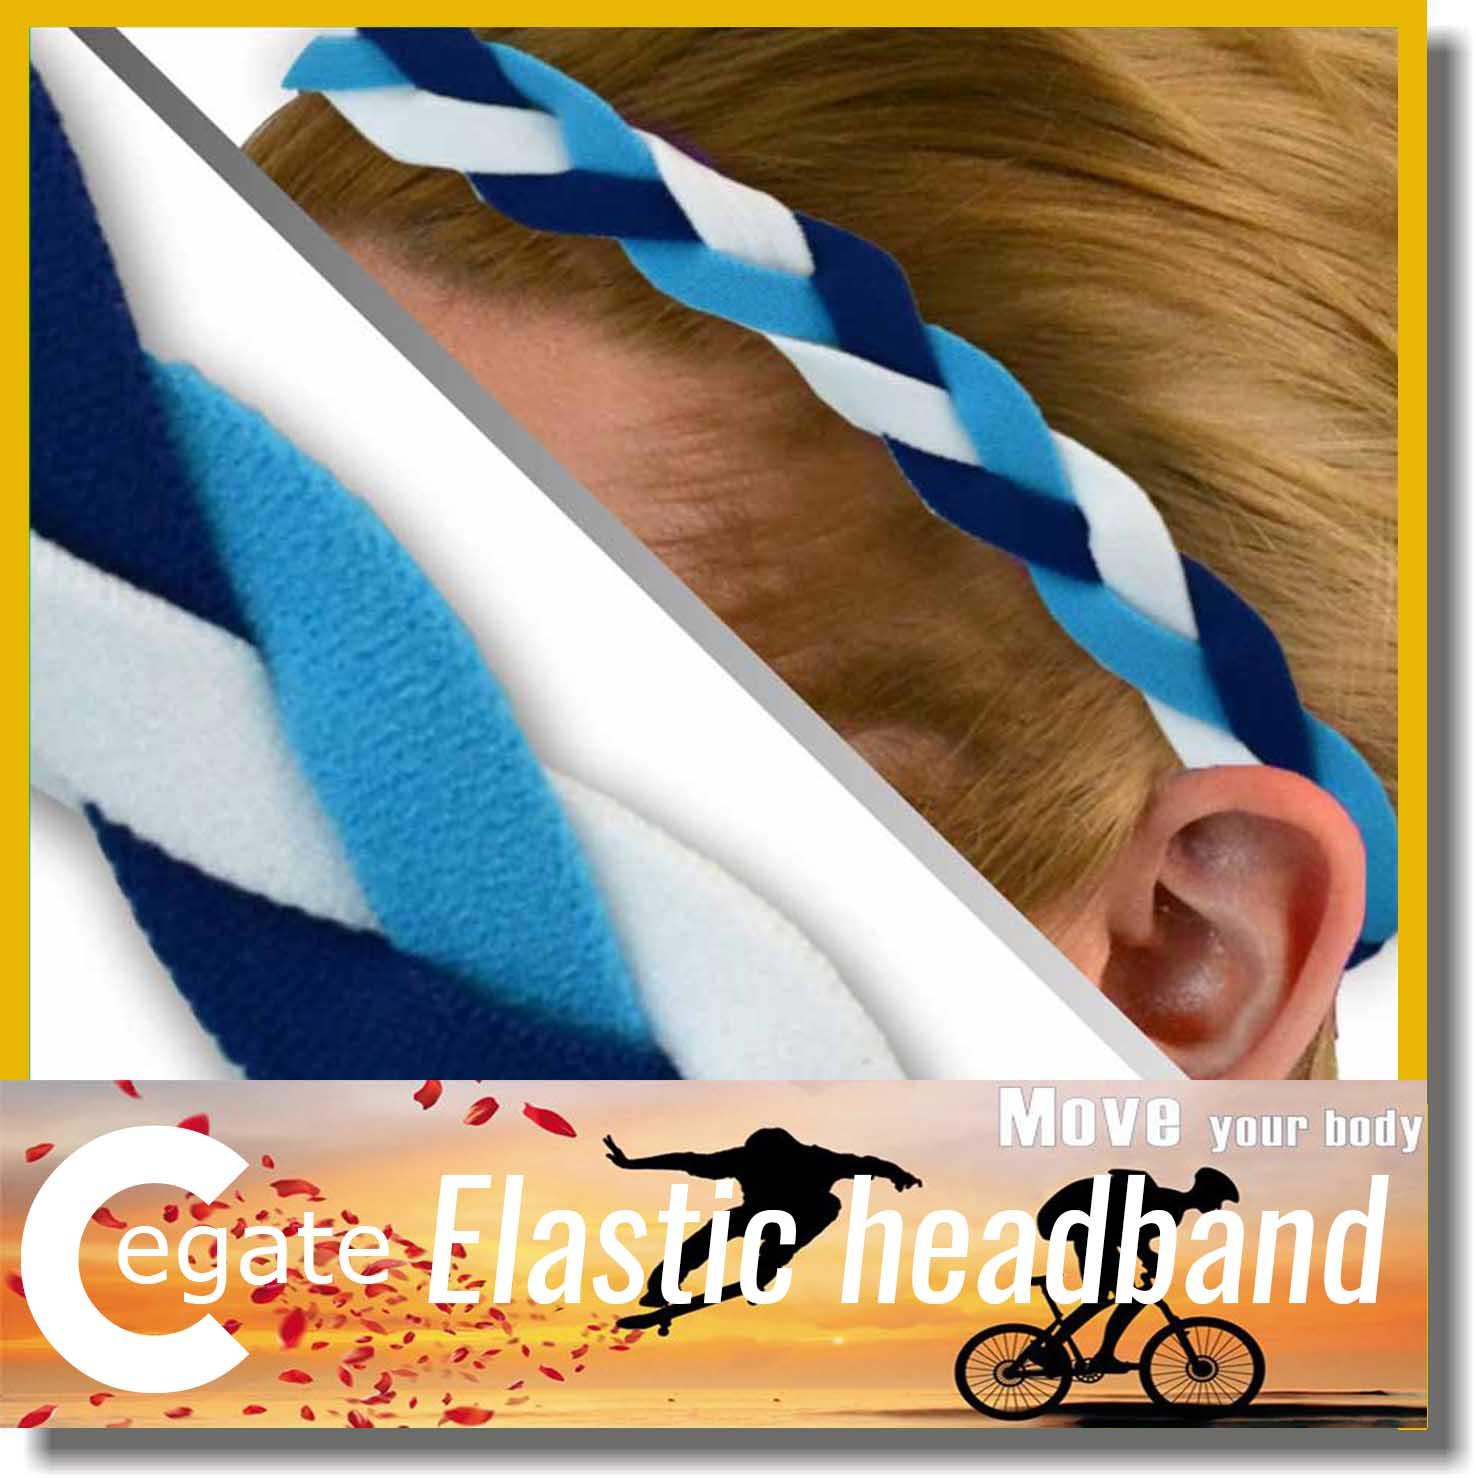 Wholesale new non slip headband different colored elastic weave braided headbands free shipping